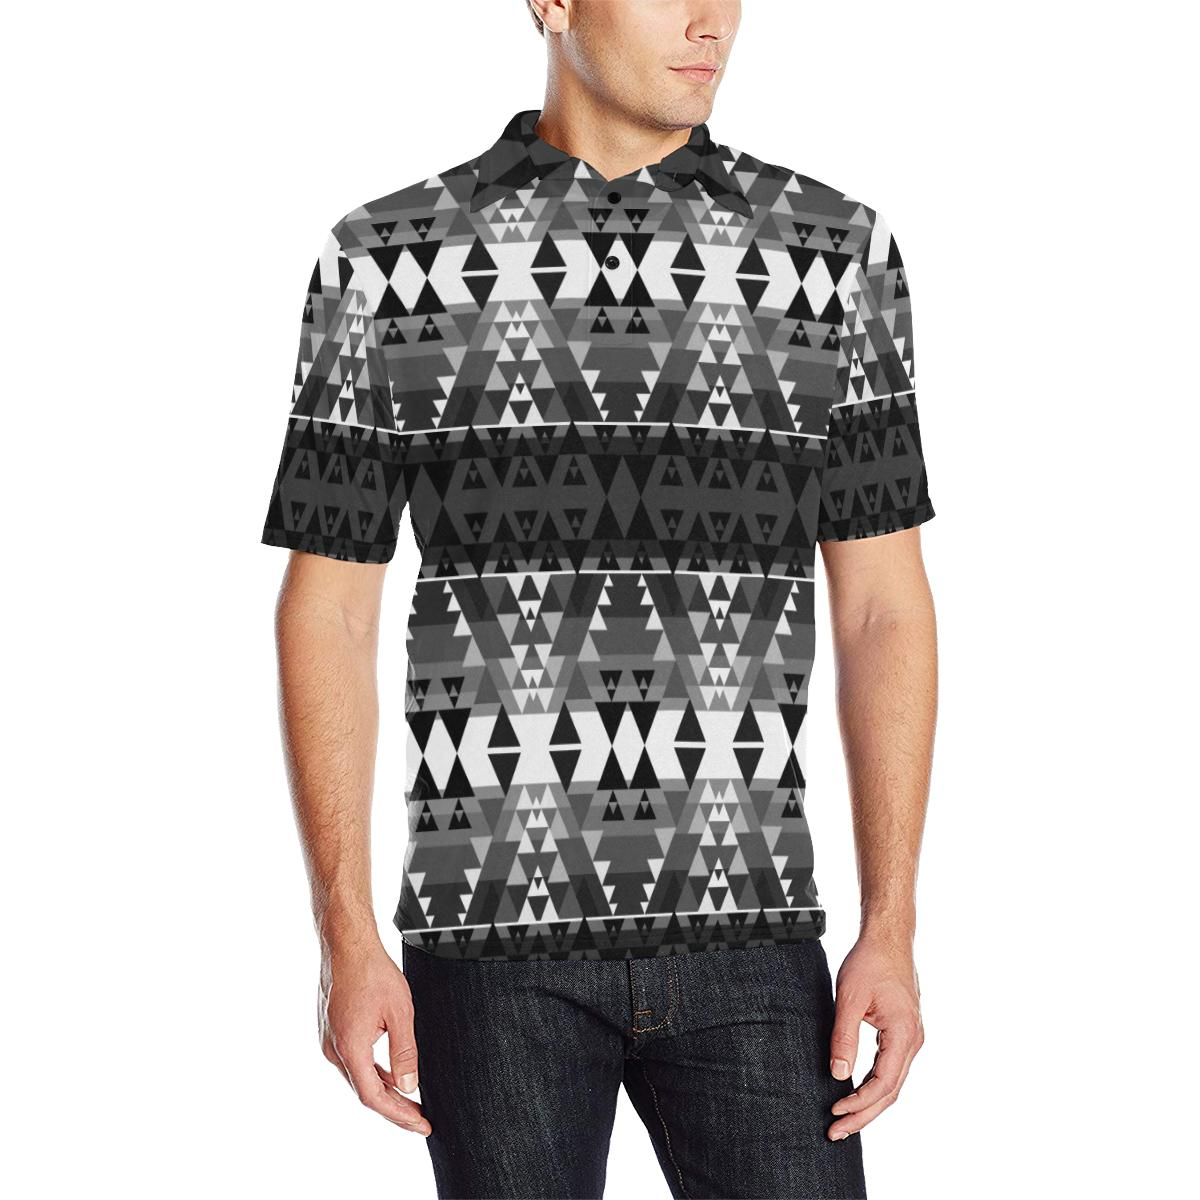 Writing on Stone Black and White Men's All Over Print Polo Shirt (Model T55) Men's Polo Shirt (Model T55) e-joyer